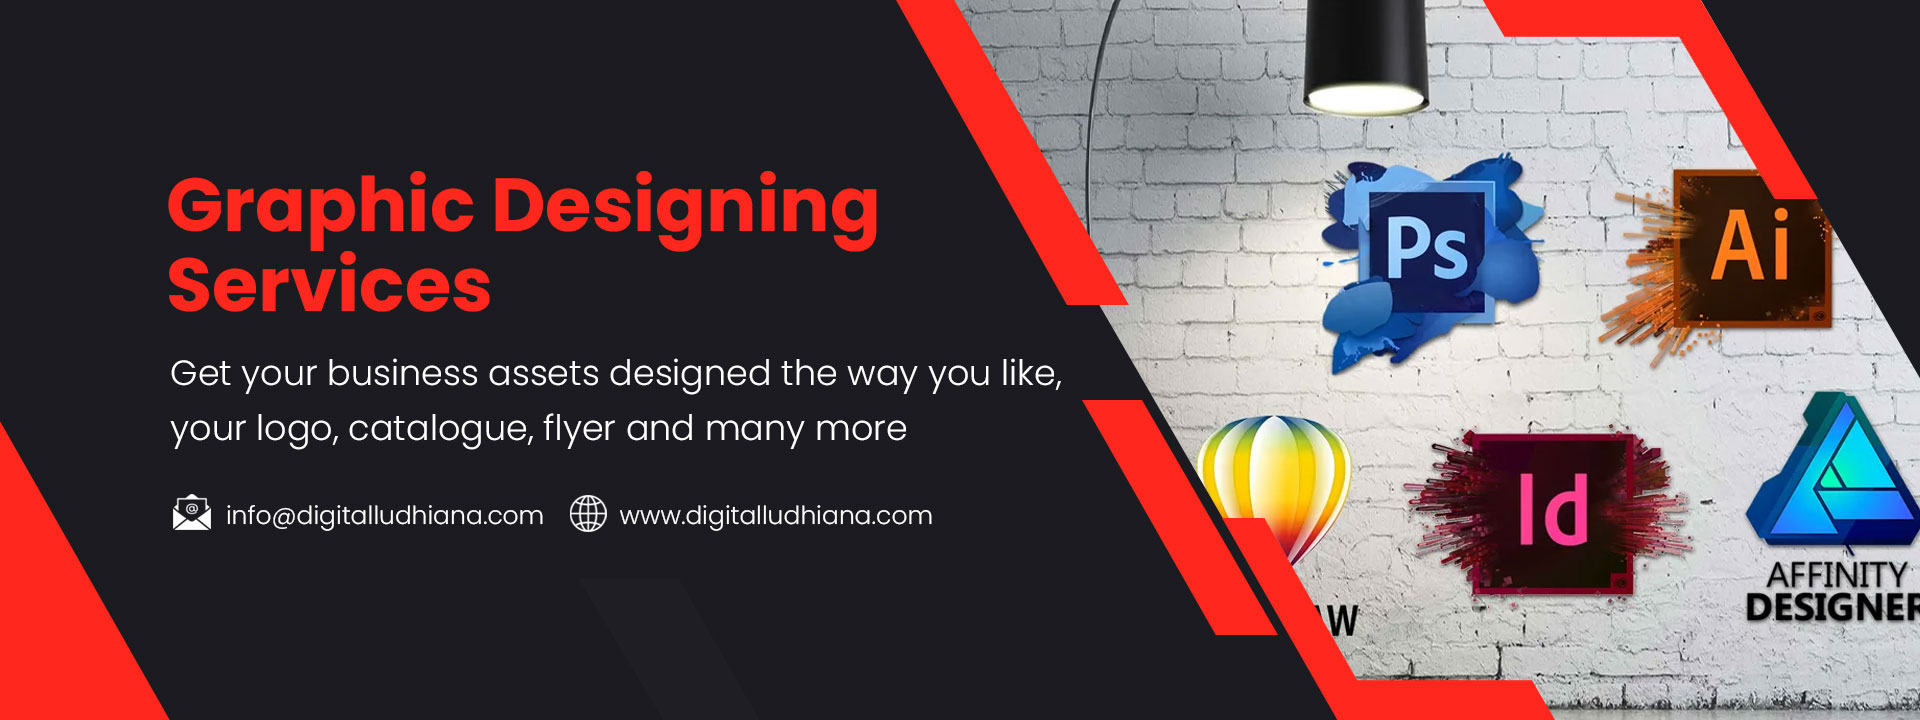 graphic designing logo flyers brochure catalouge booklet services in ludhiana punjab india